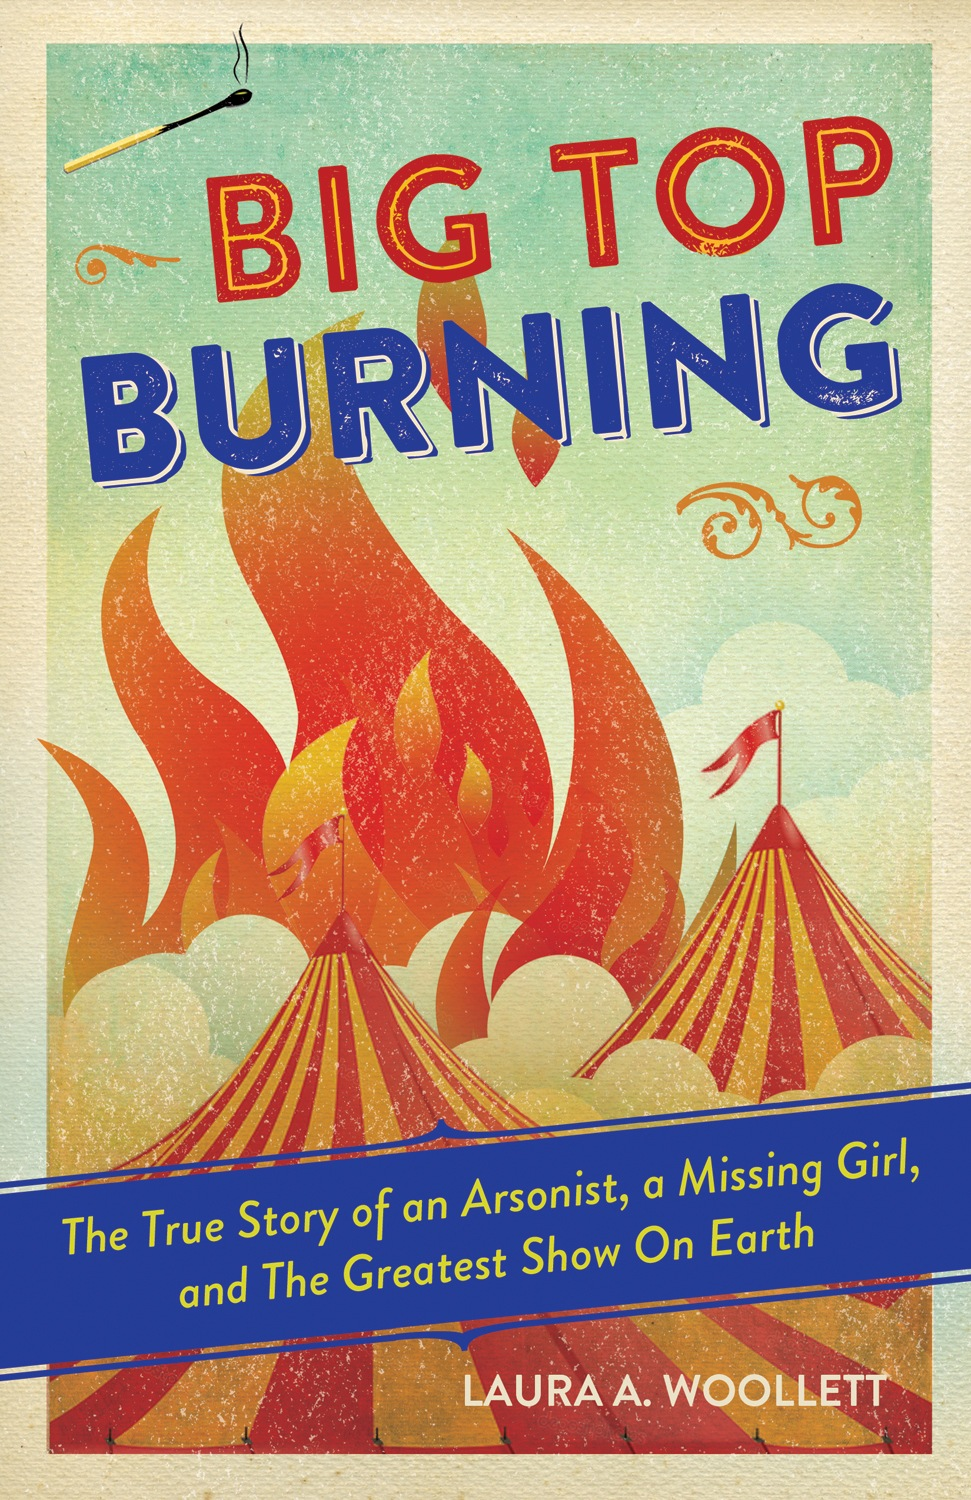 """Big Top Burning"" by Laura A. Woollett c.2015, Chicago Review Press                        $18.95 / $22.95 Canada                167 pages""Big Top Burning"" by Laura A. Woollett c.2015, Chicago Review Press                        $18.95 / $22.95 Canada                167 pages"